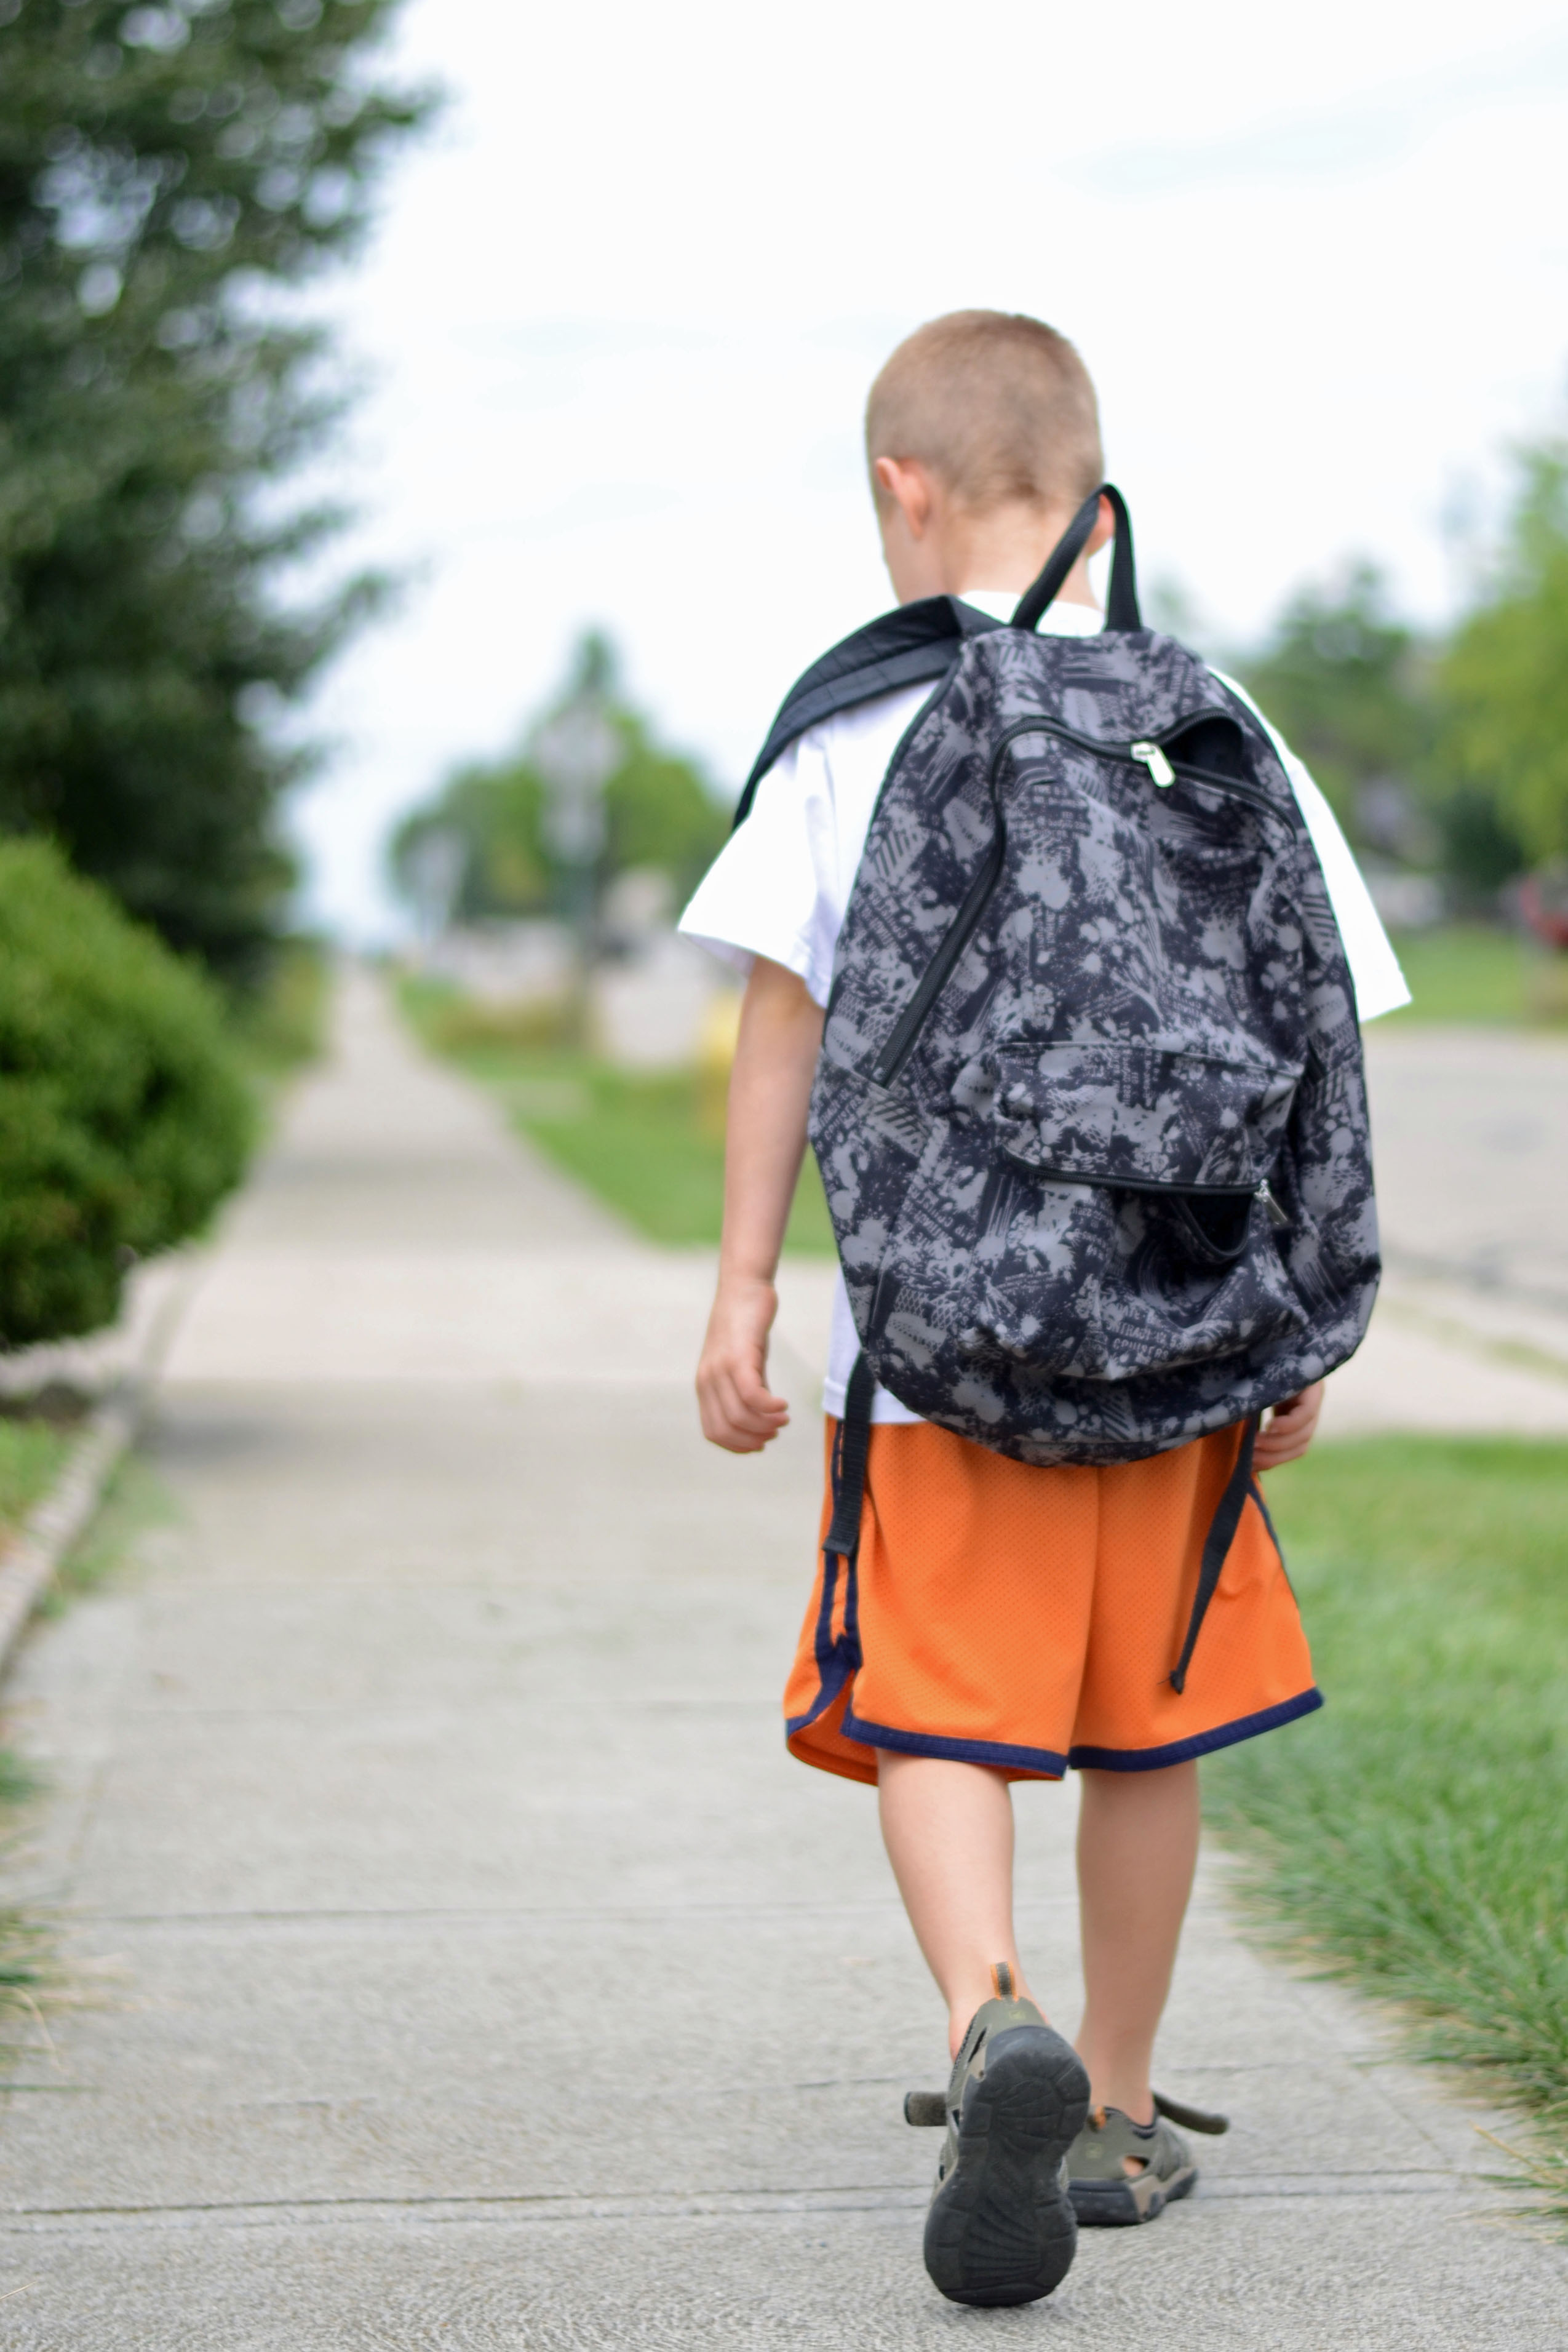 Back to school panic attach? Not in your childs health strategy!